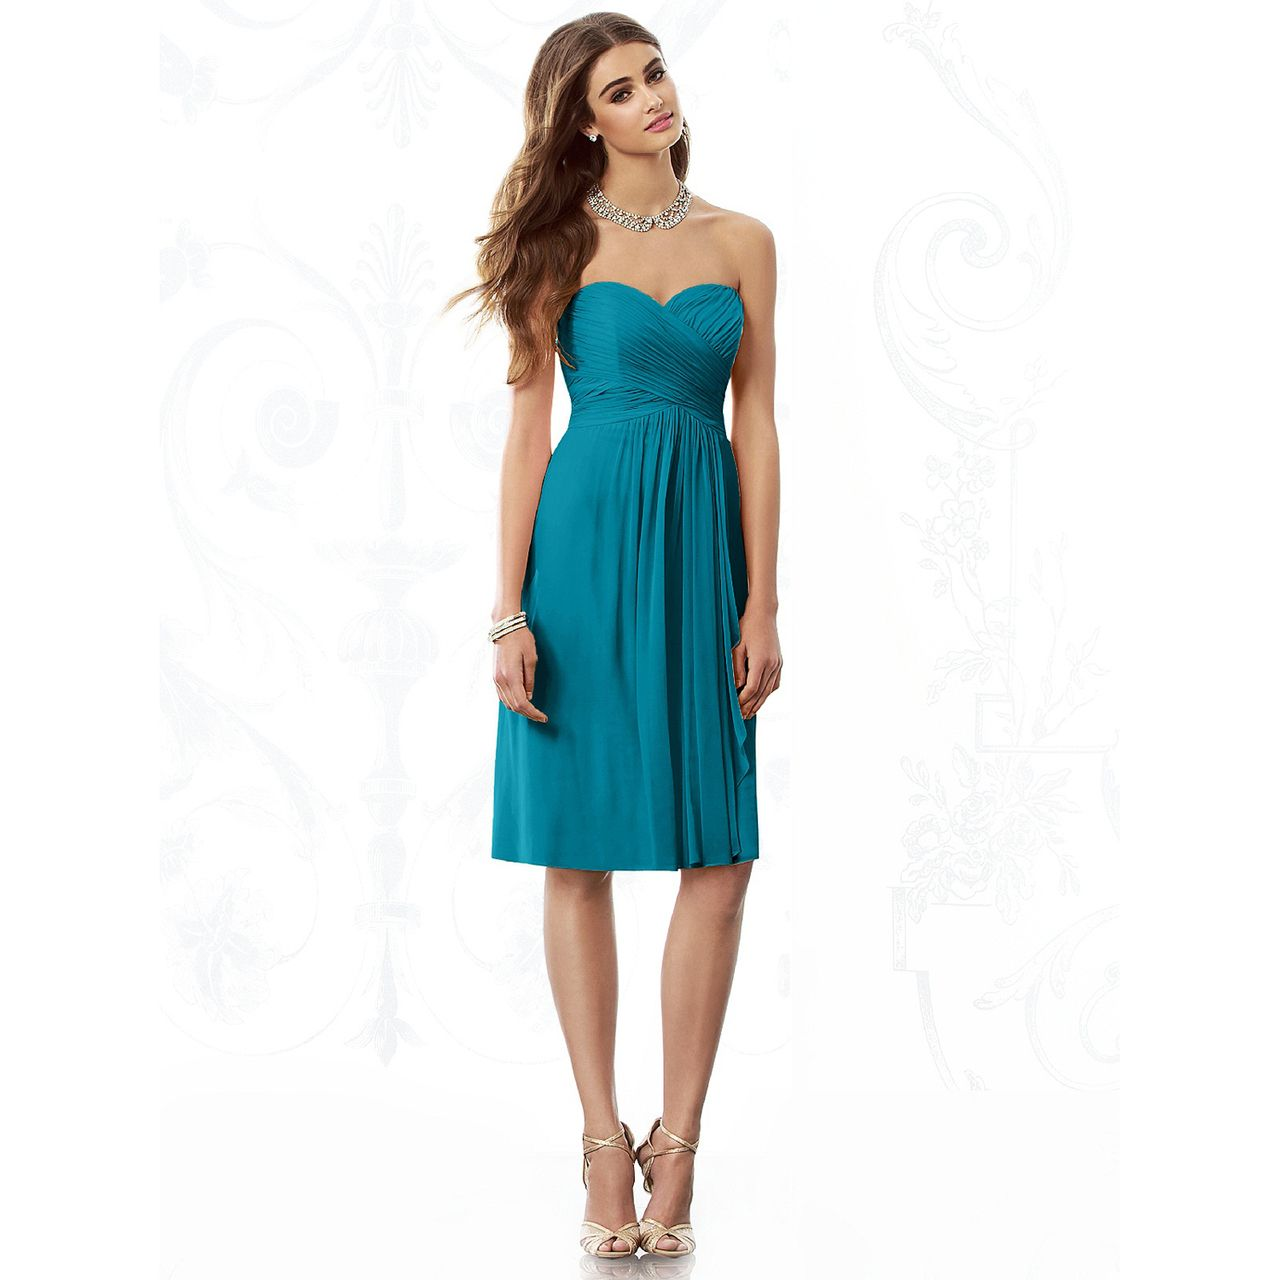 Fashionably yours acacia bridesmaid dress by after six from dessy